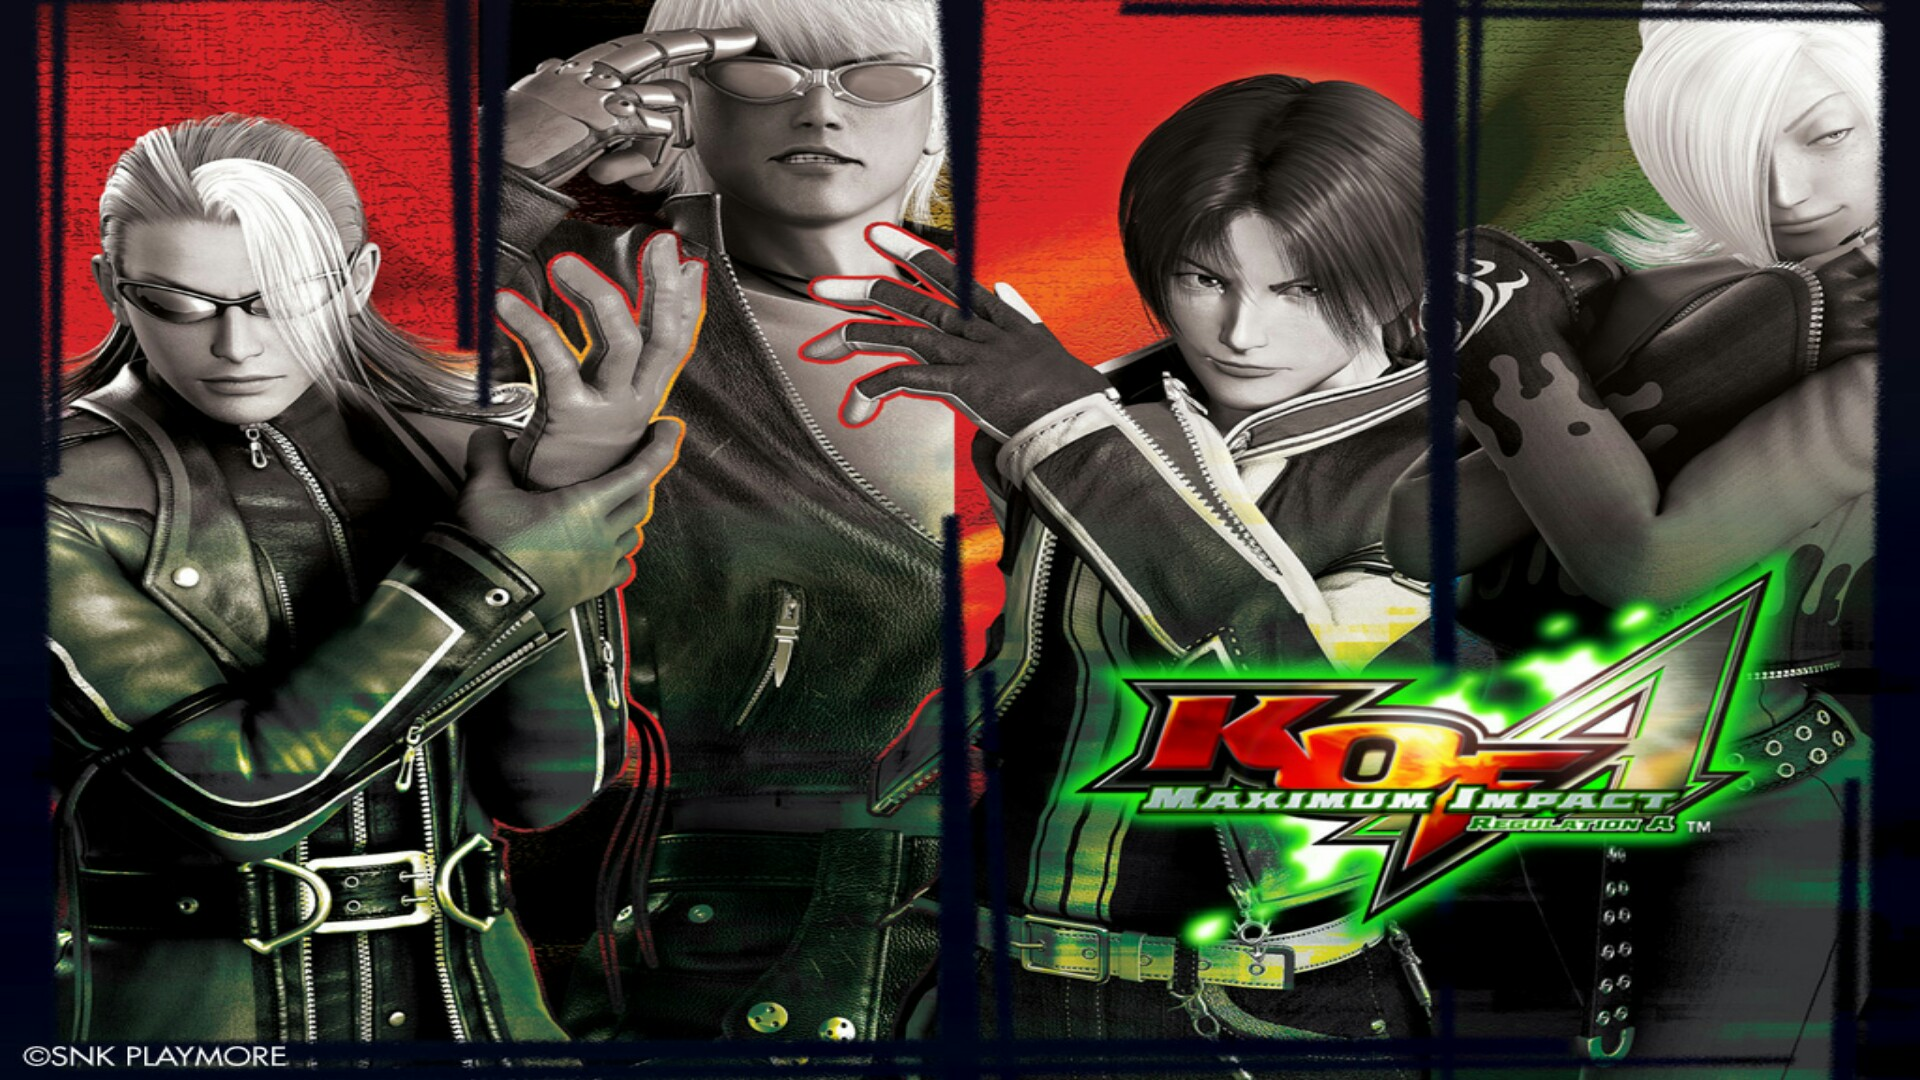 The King Of Fighters Maximum Impact Regulation A 04